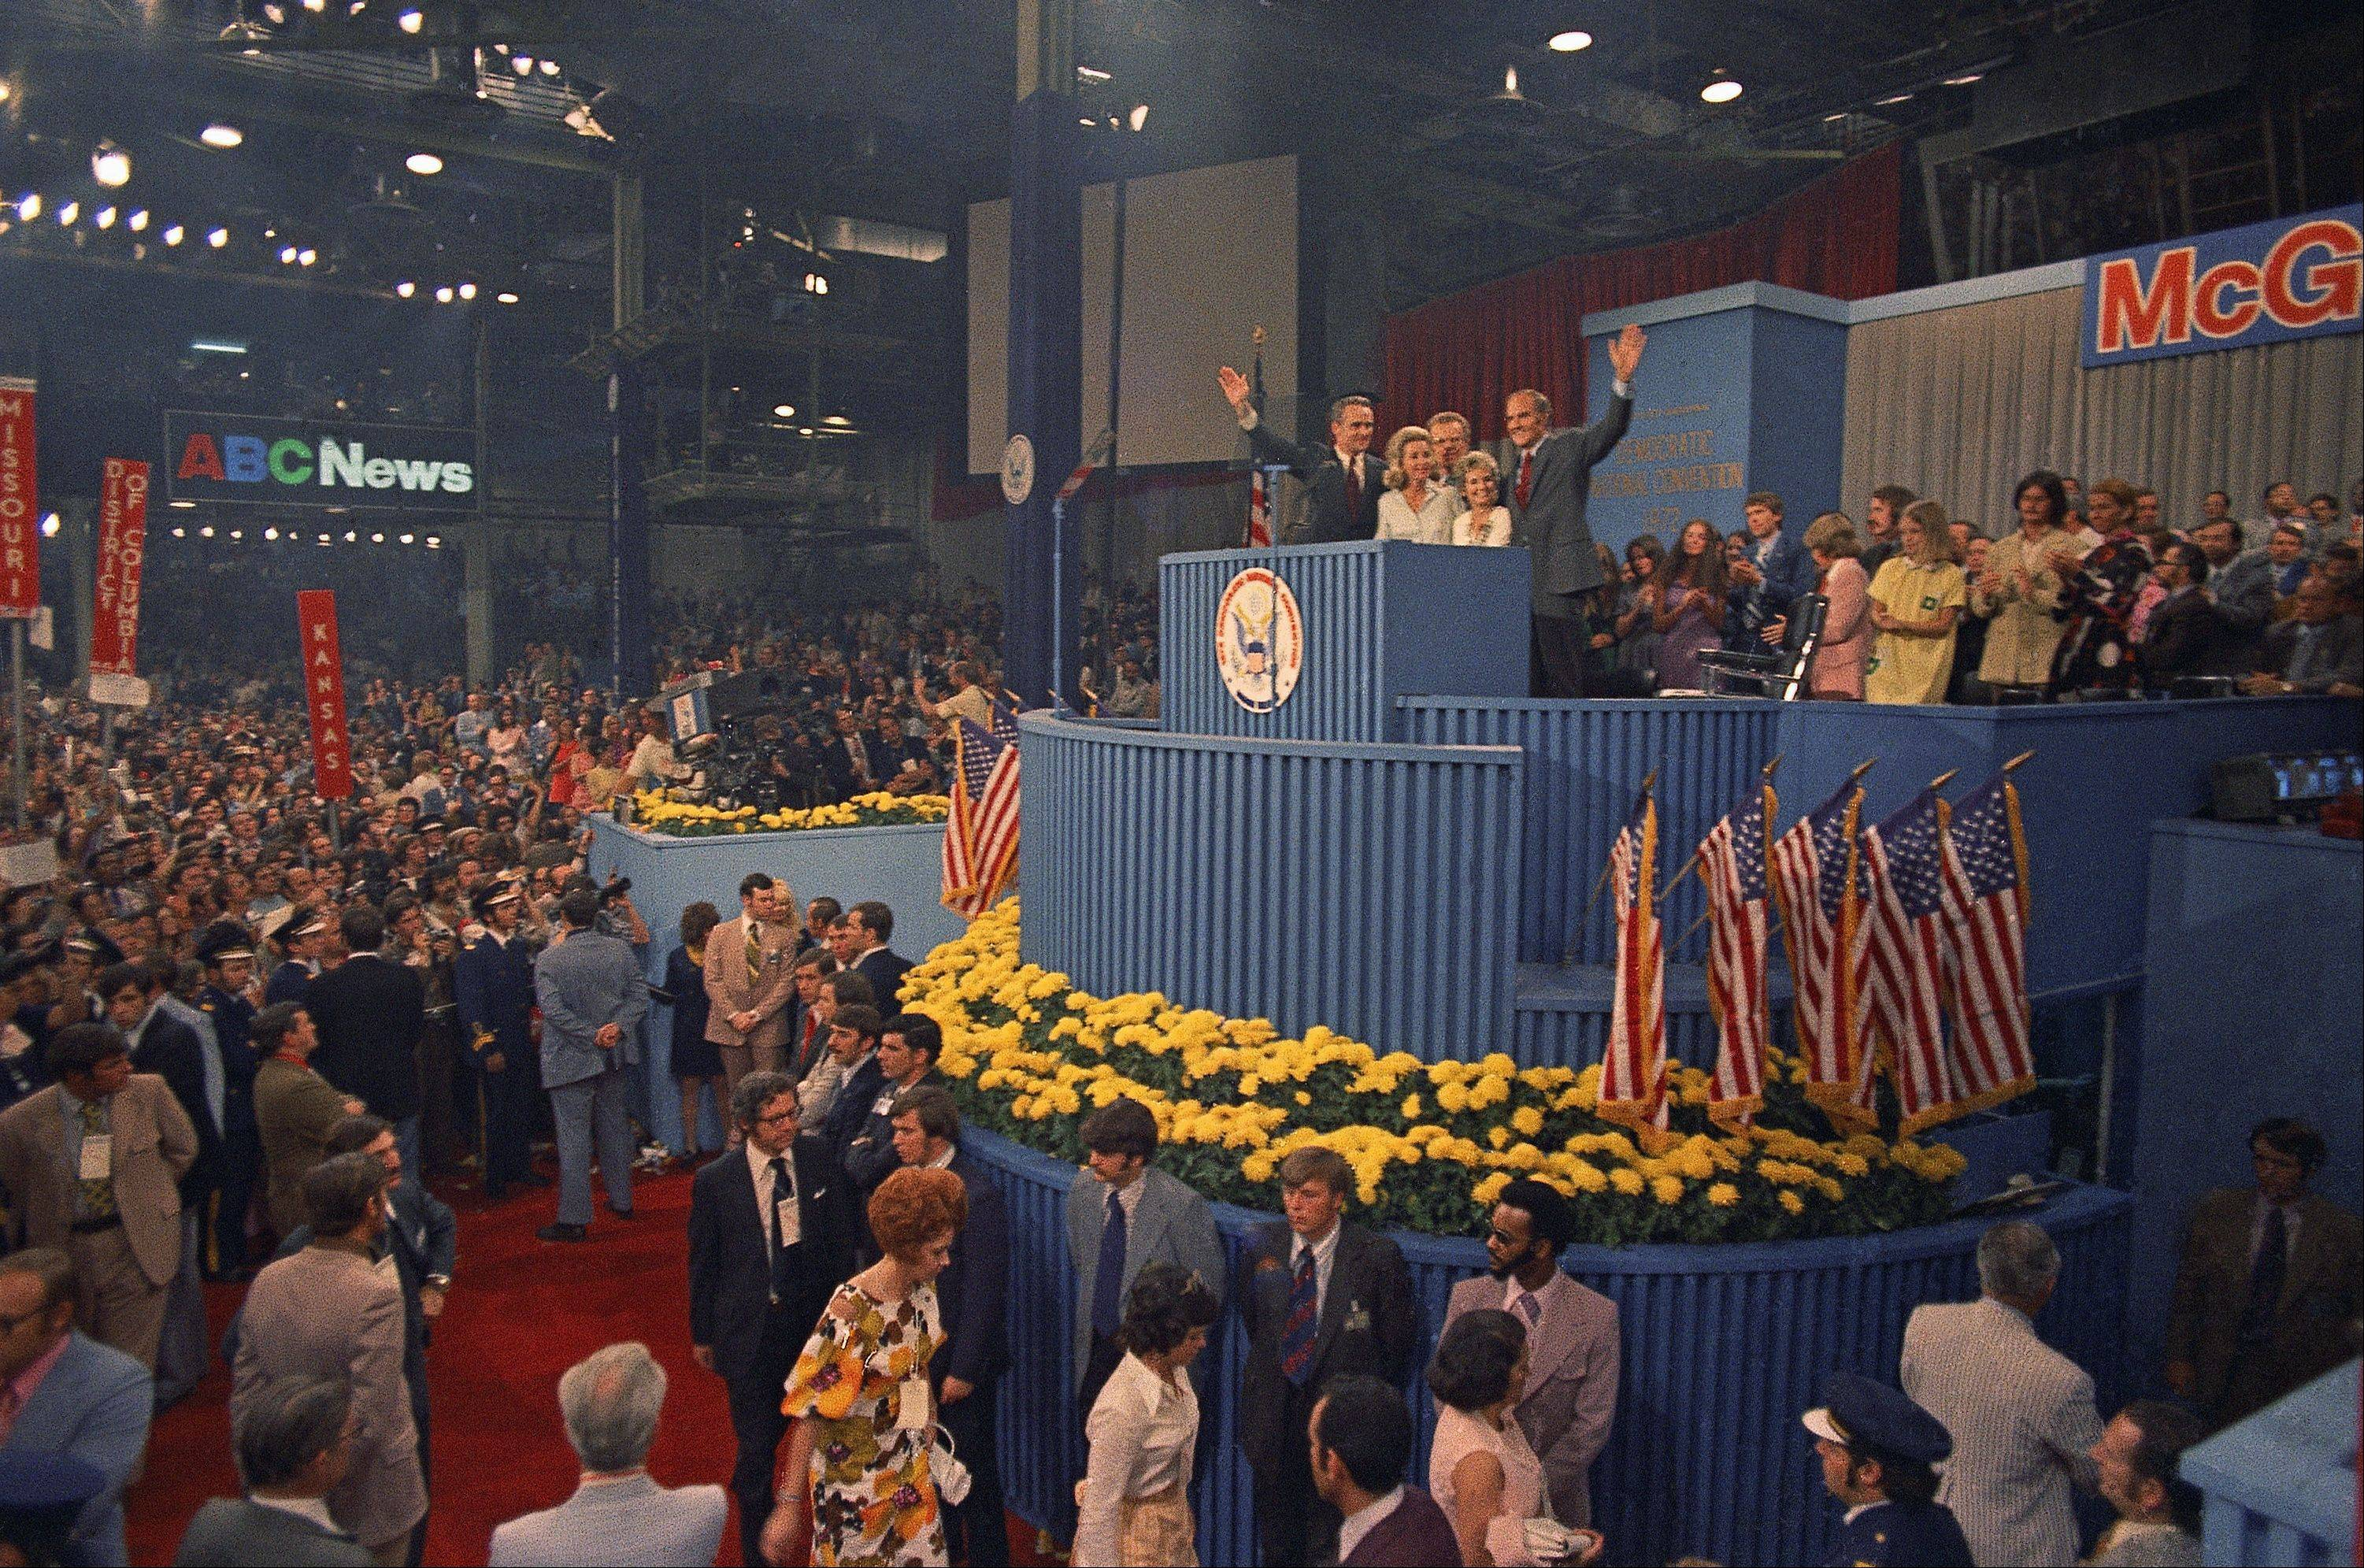 Sen. George McGovern and his running mate Sargent Shriver are shown with their wives on the podium in Miami at the Democratic National Convention, July 1972.